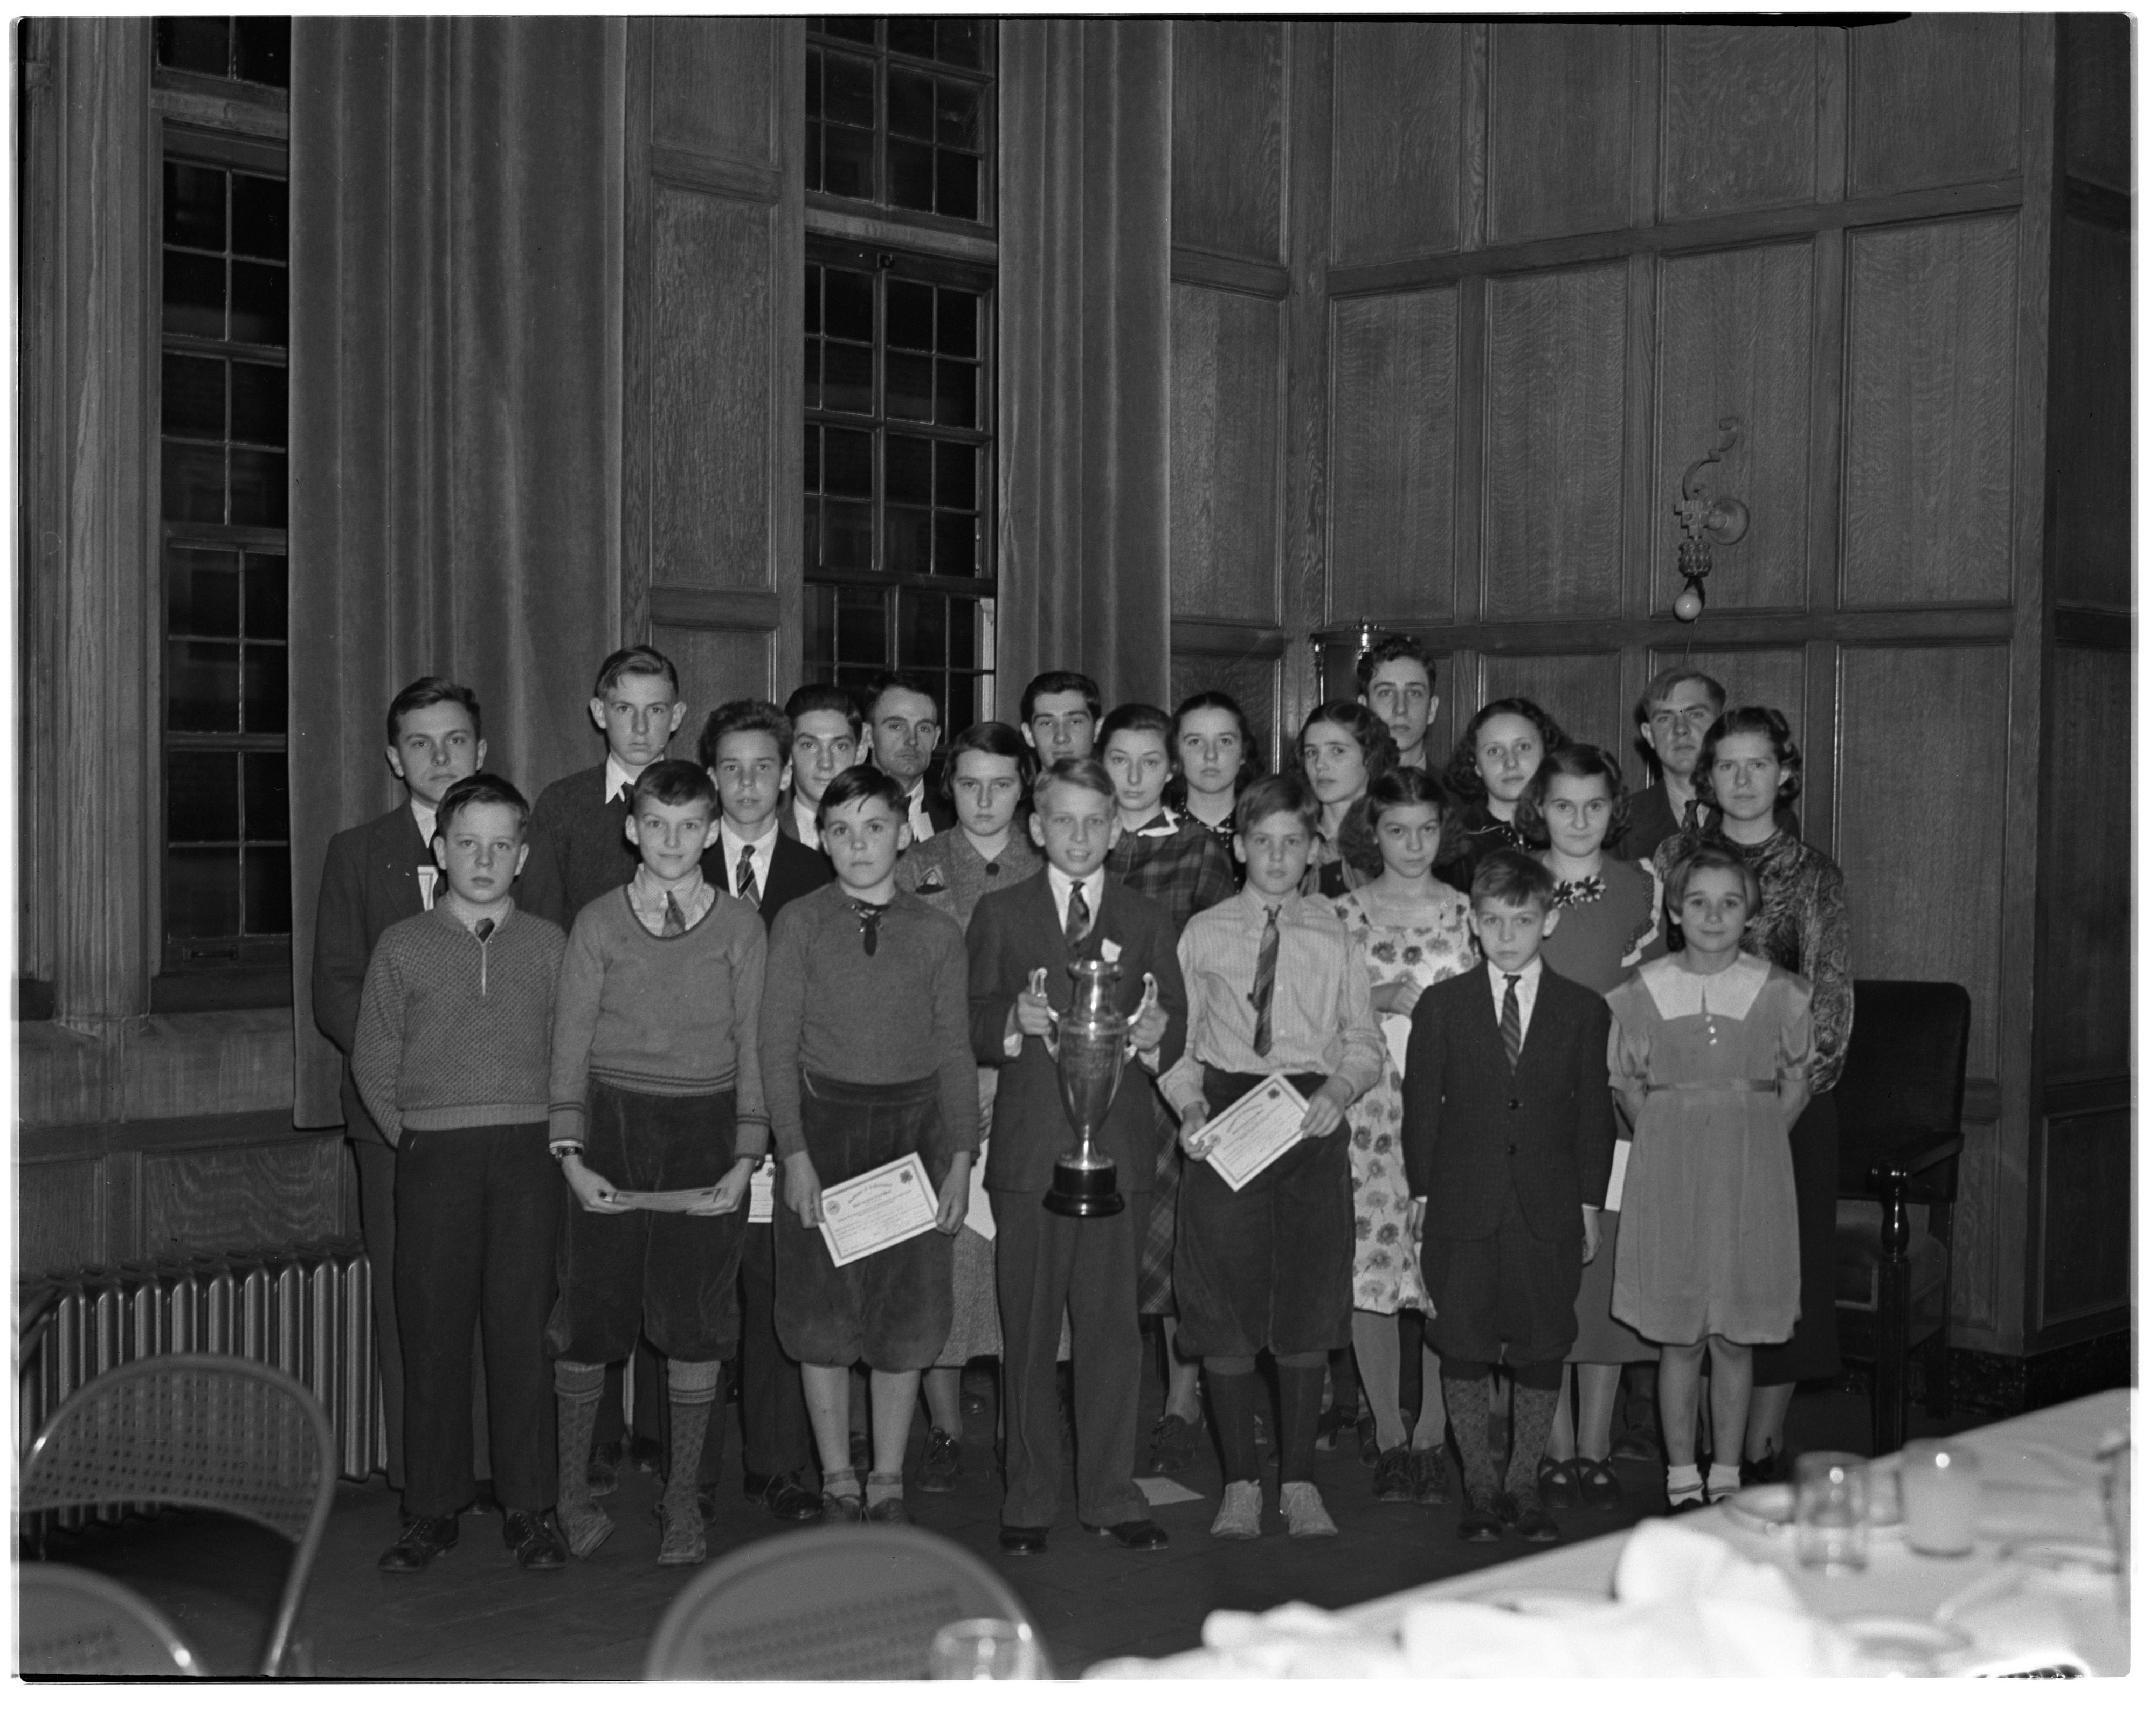 4-H Kiwanis Dinner for Prize Winners, November 1937 image